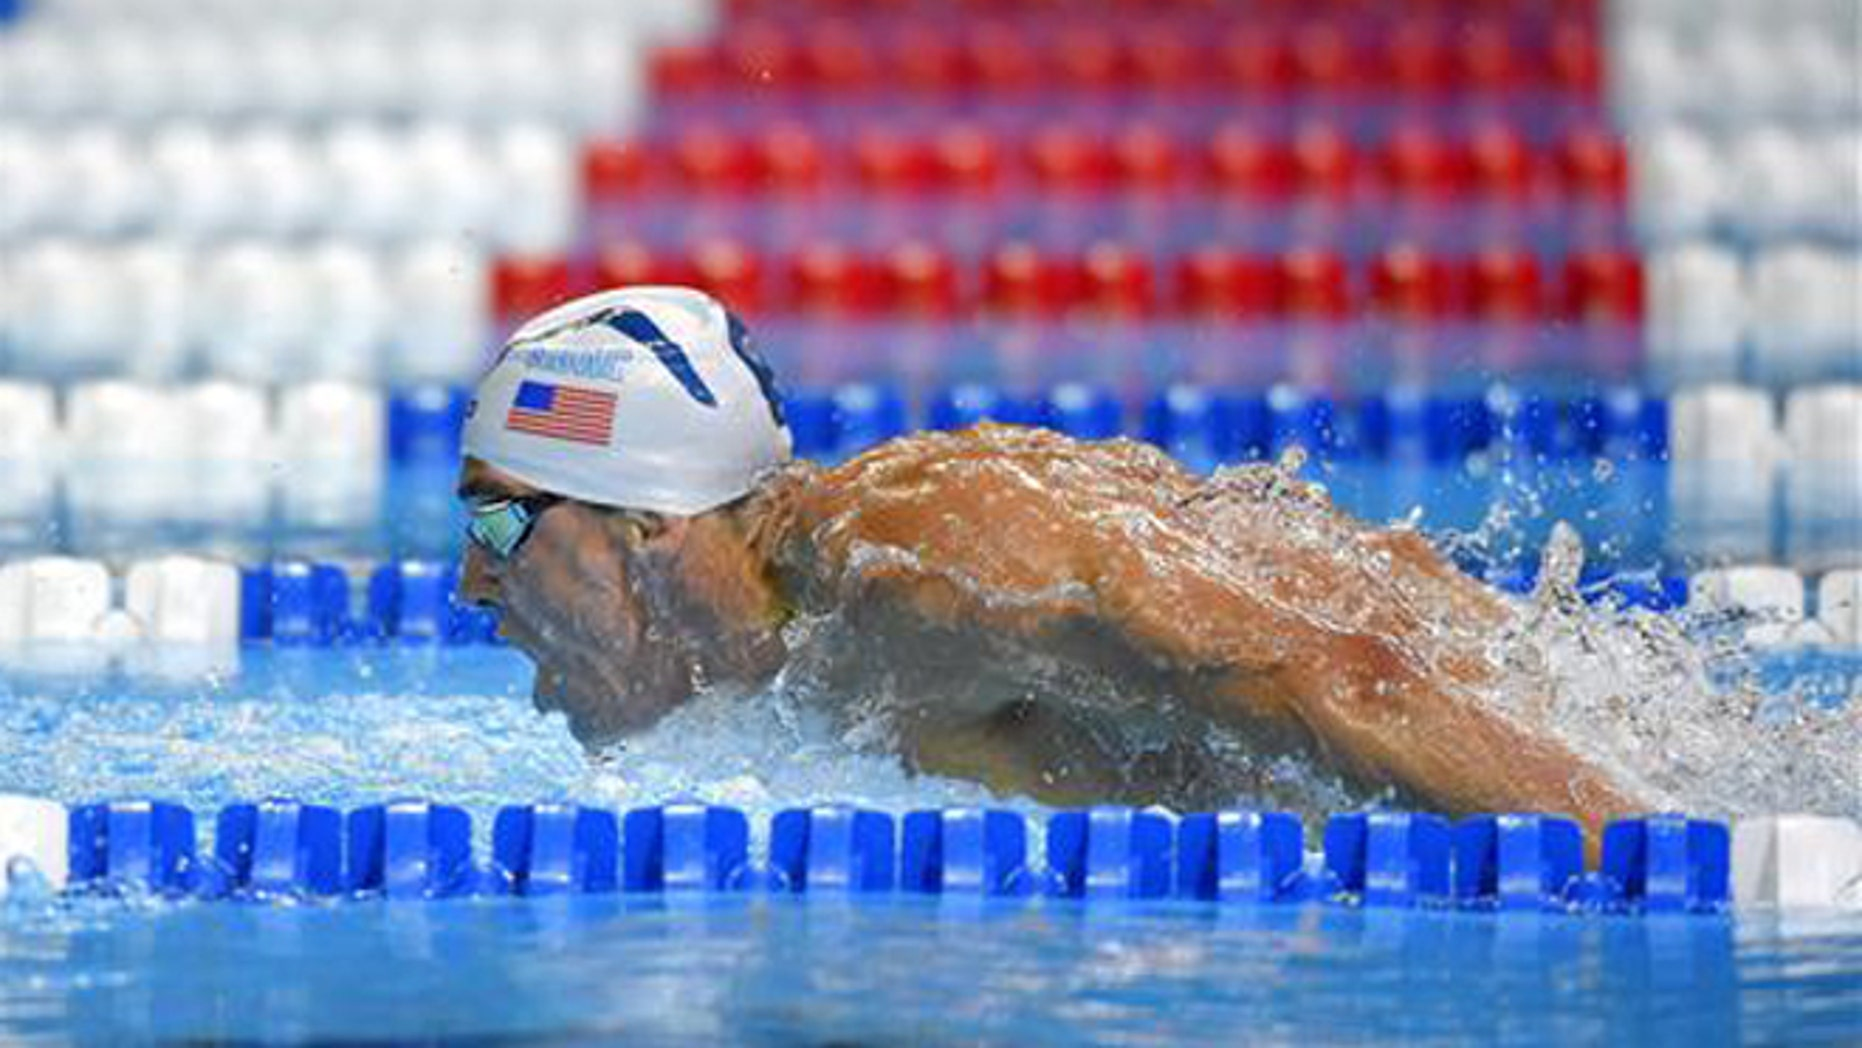 Michael Phelps swims in a men's 200-meter butterfly semifinal at the U.S. Olympic swimming trials, Tuesday, June 28, 2016, in Omaha, Neb.